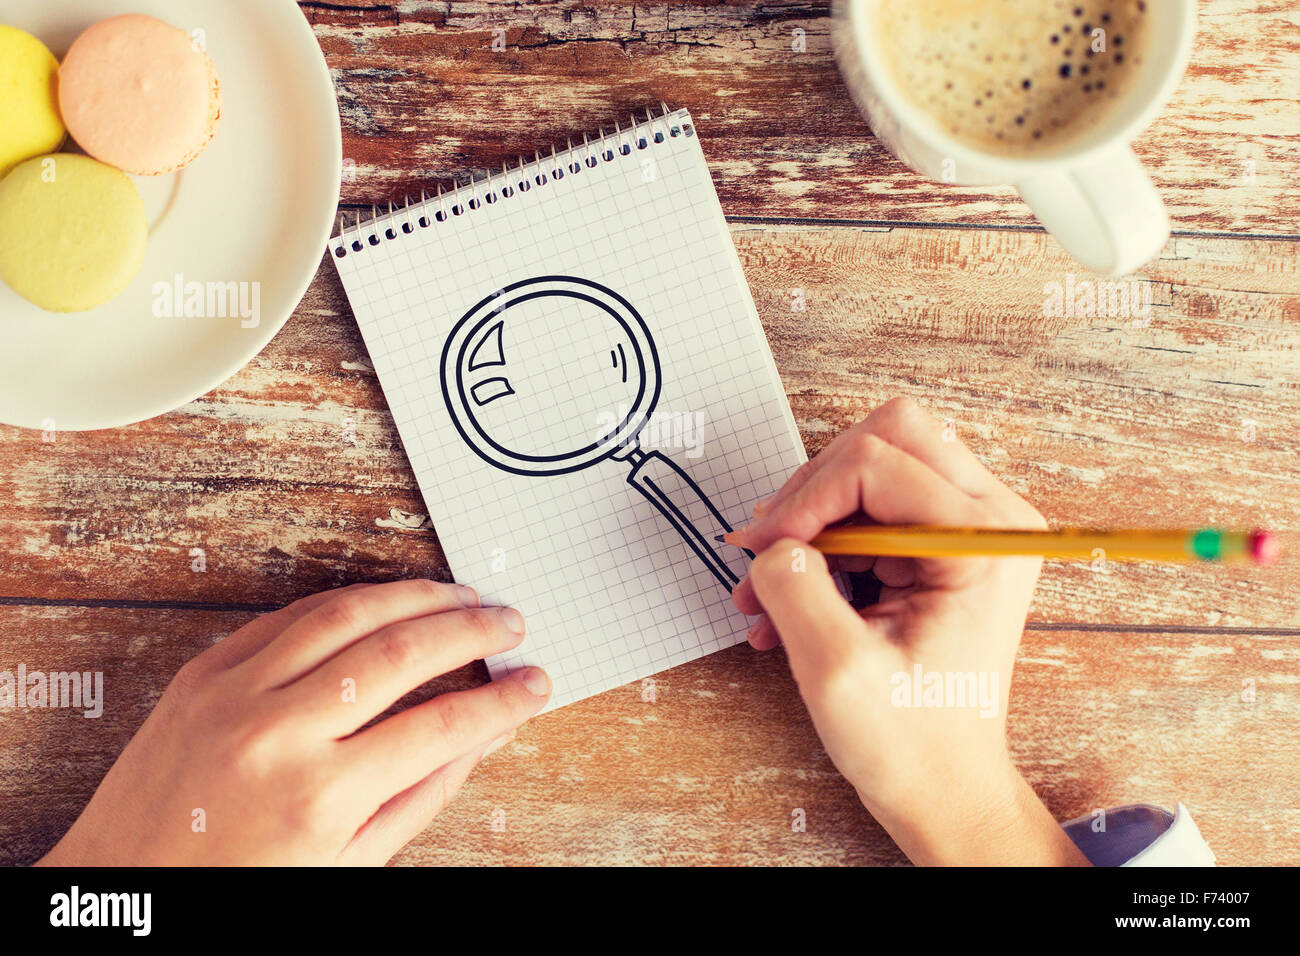 close up of hands drawing magnifier in notebook - Stock Photo